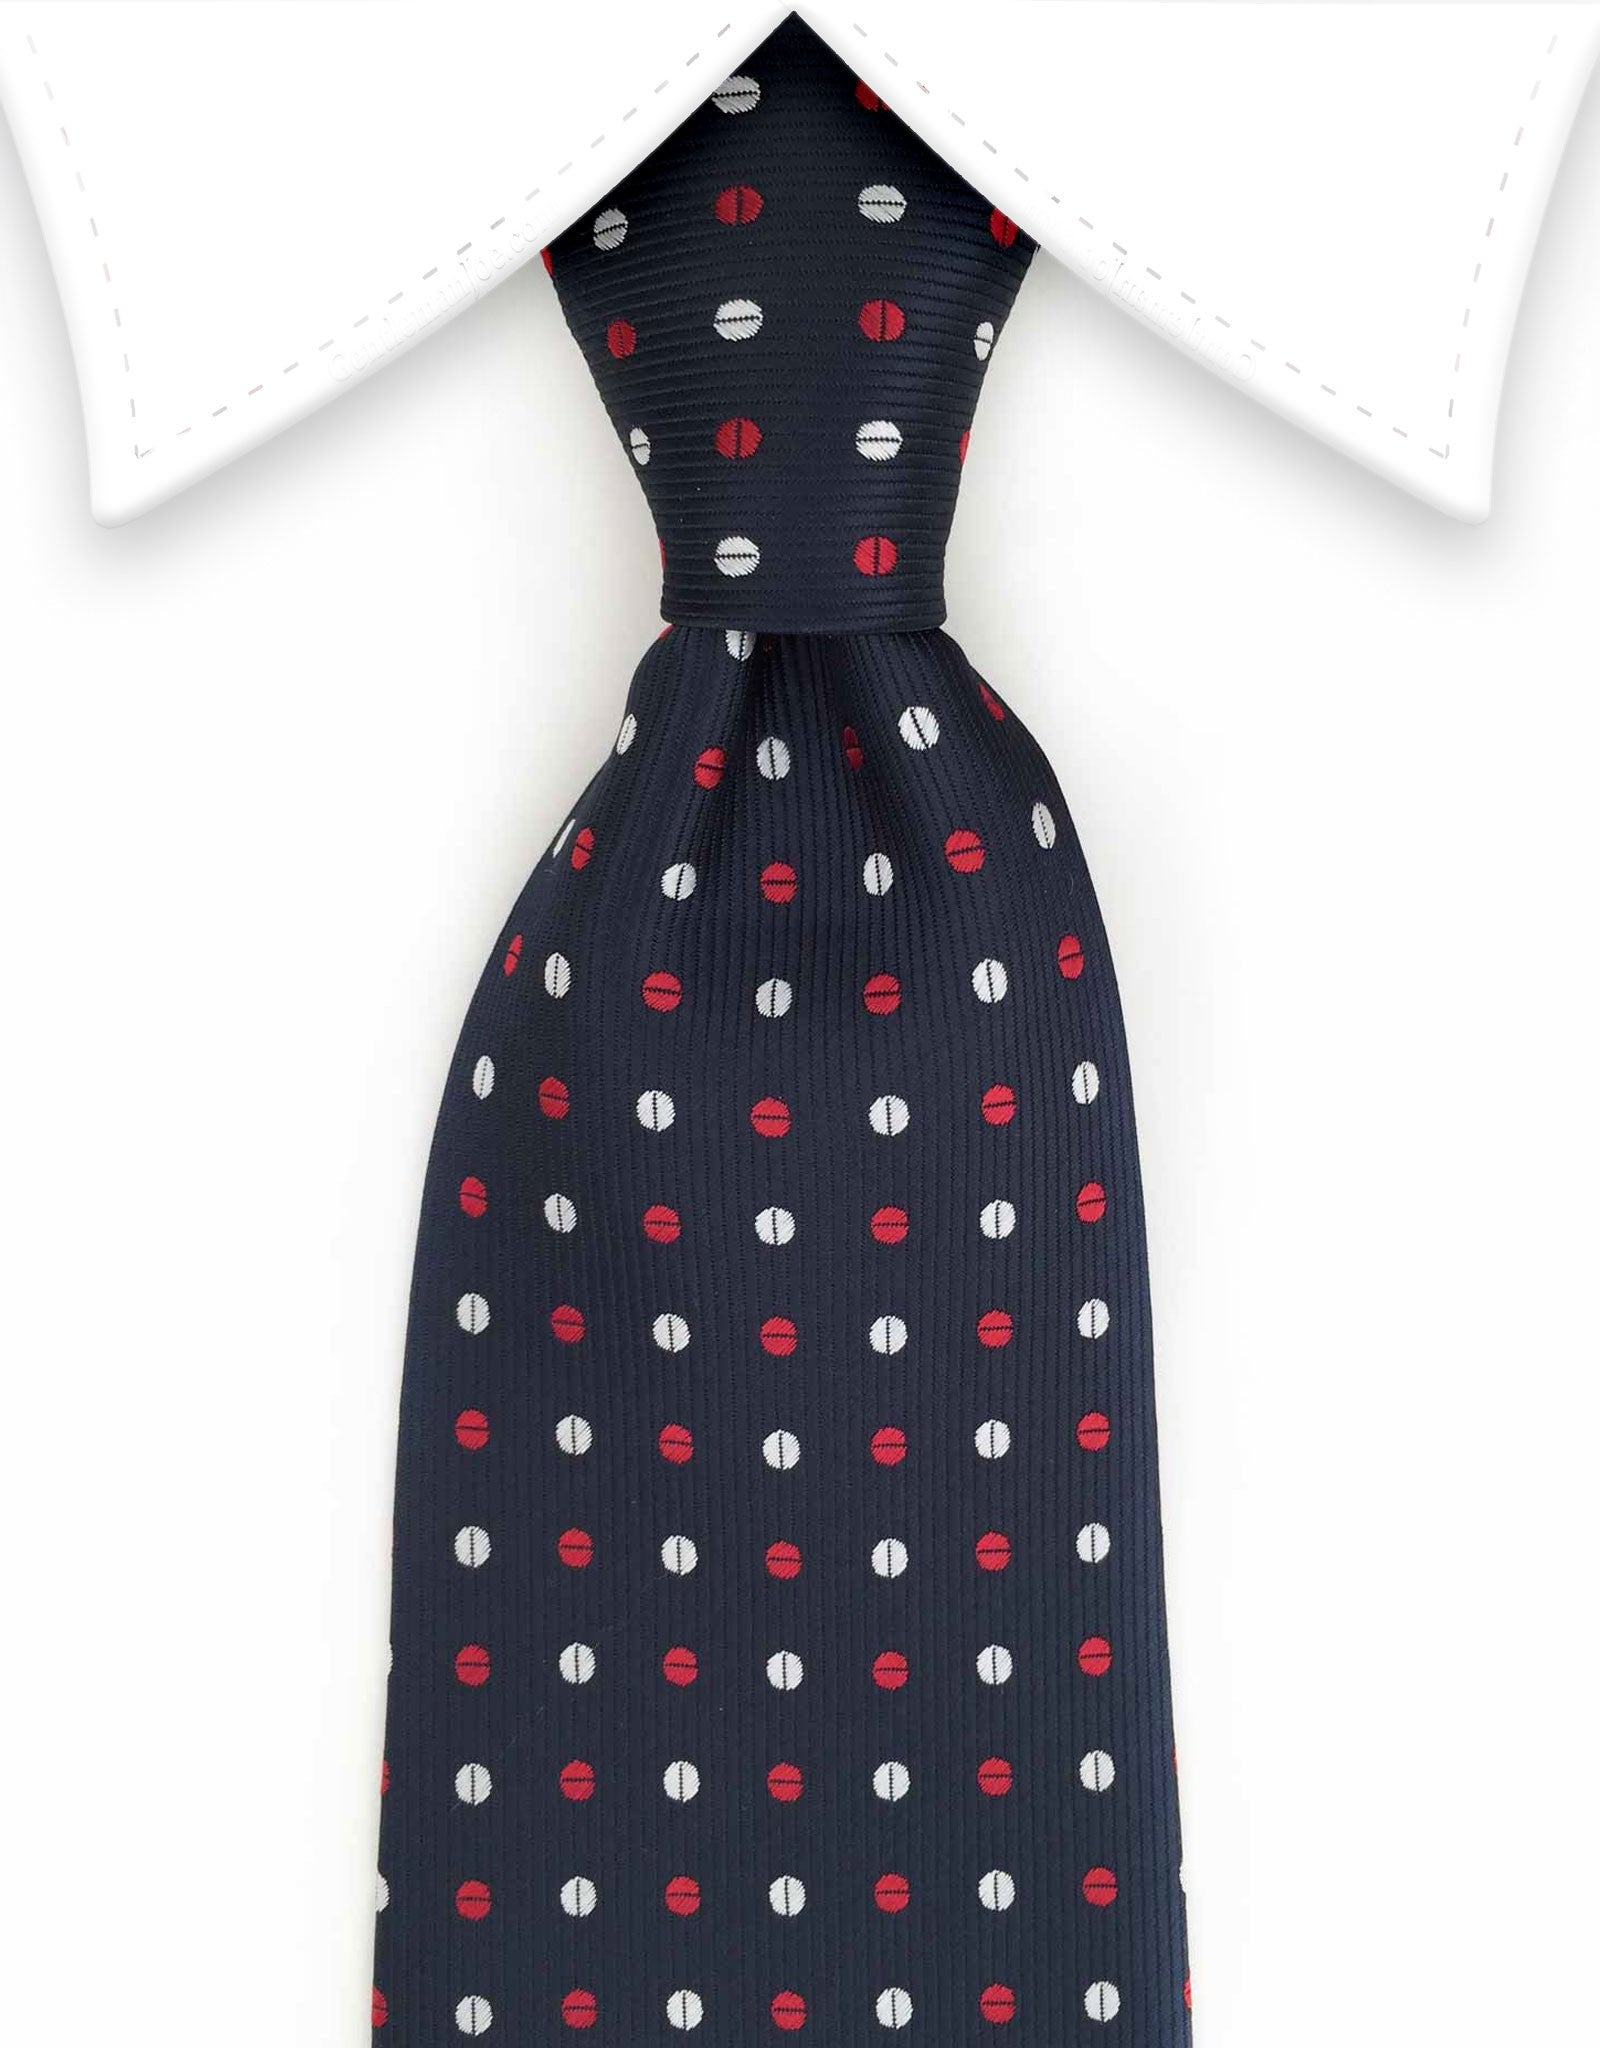 navy tie with red and white dots